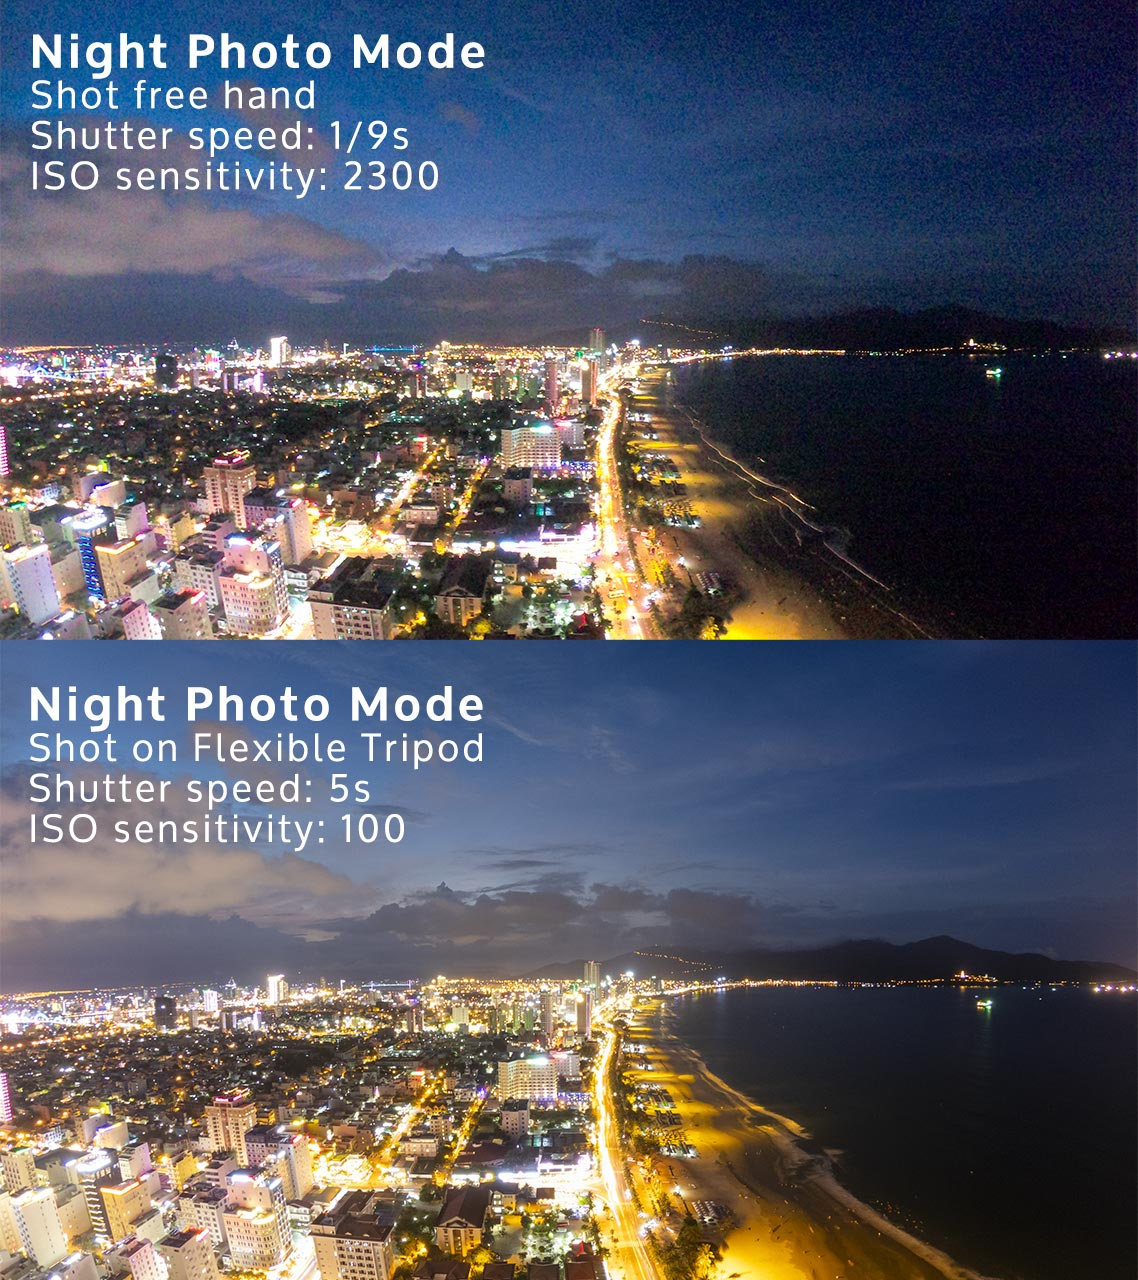 GoPro Hero 7 Black was used in Night Photo Mode for both photos.